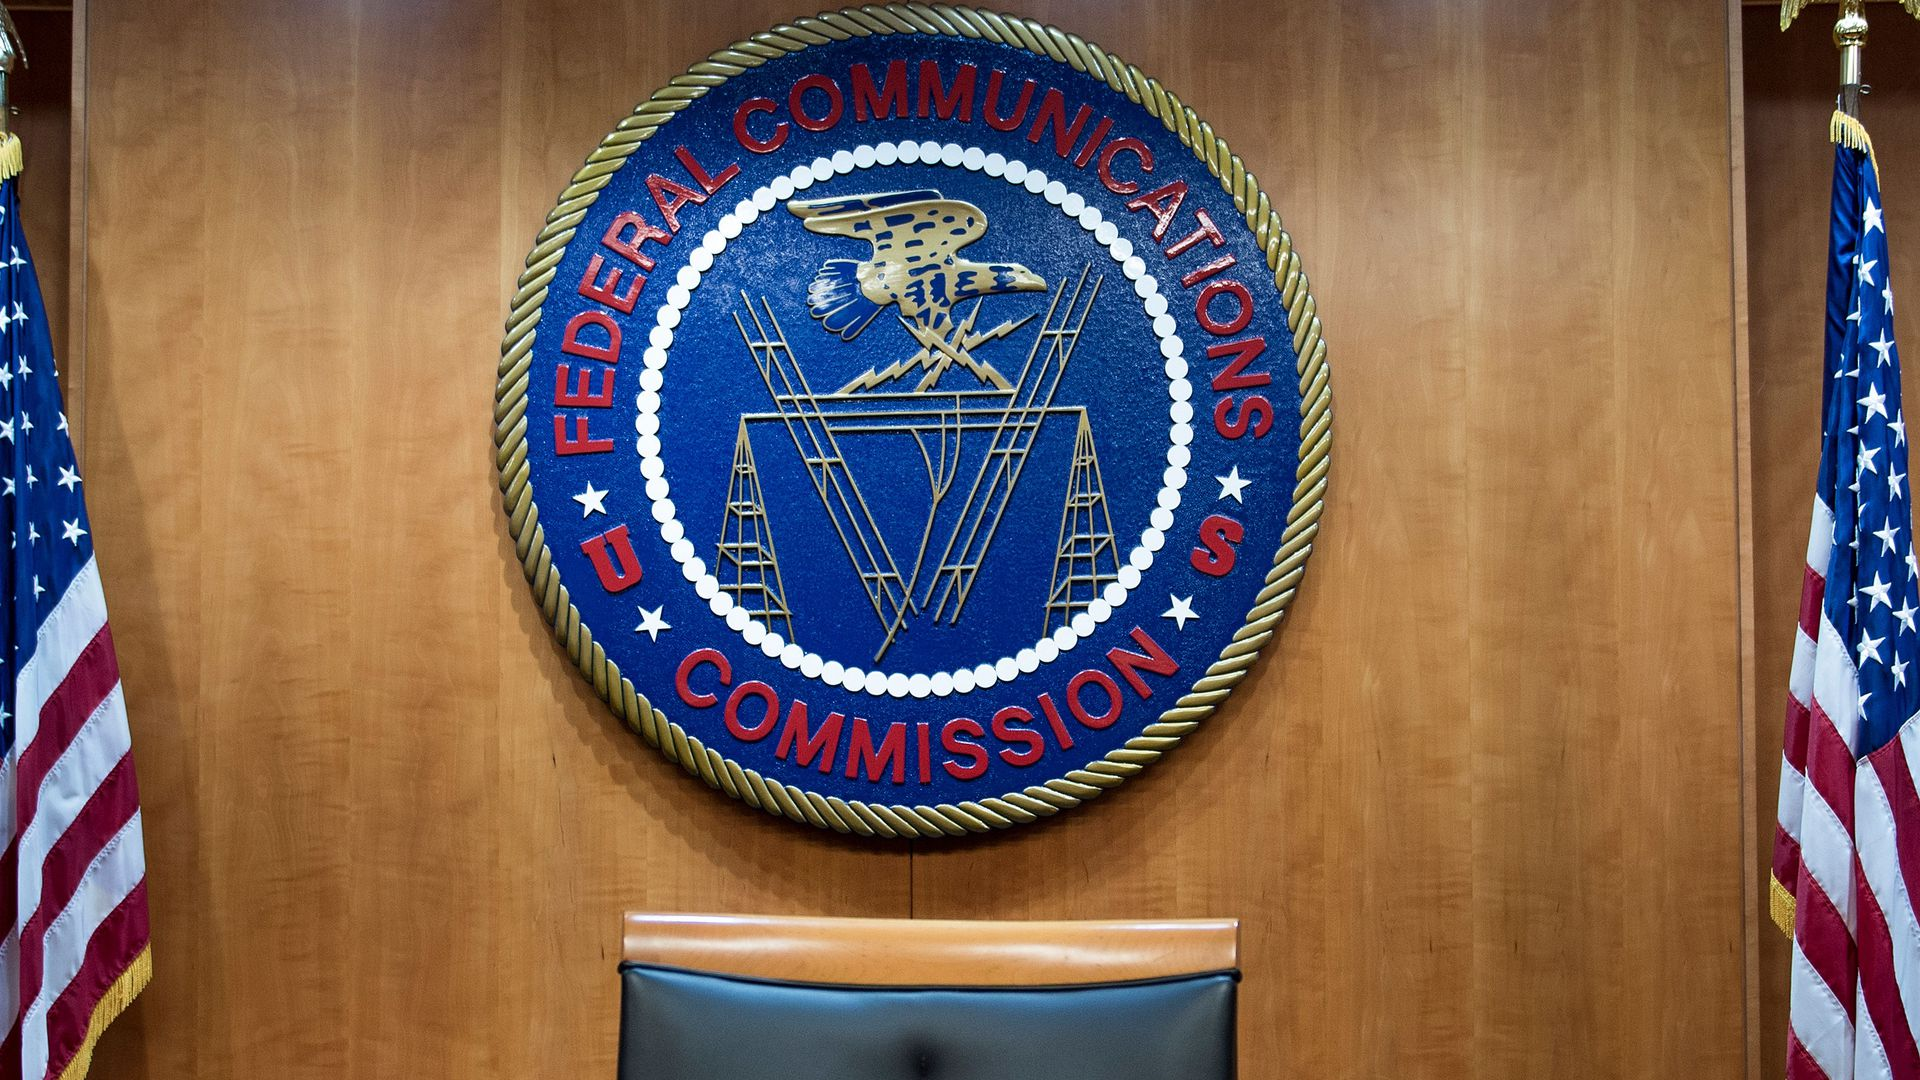 The seal of the FCC mounted on the wall